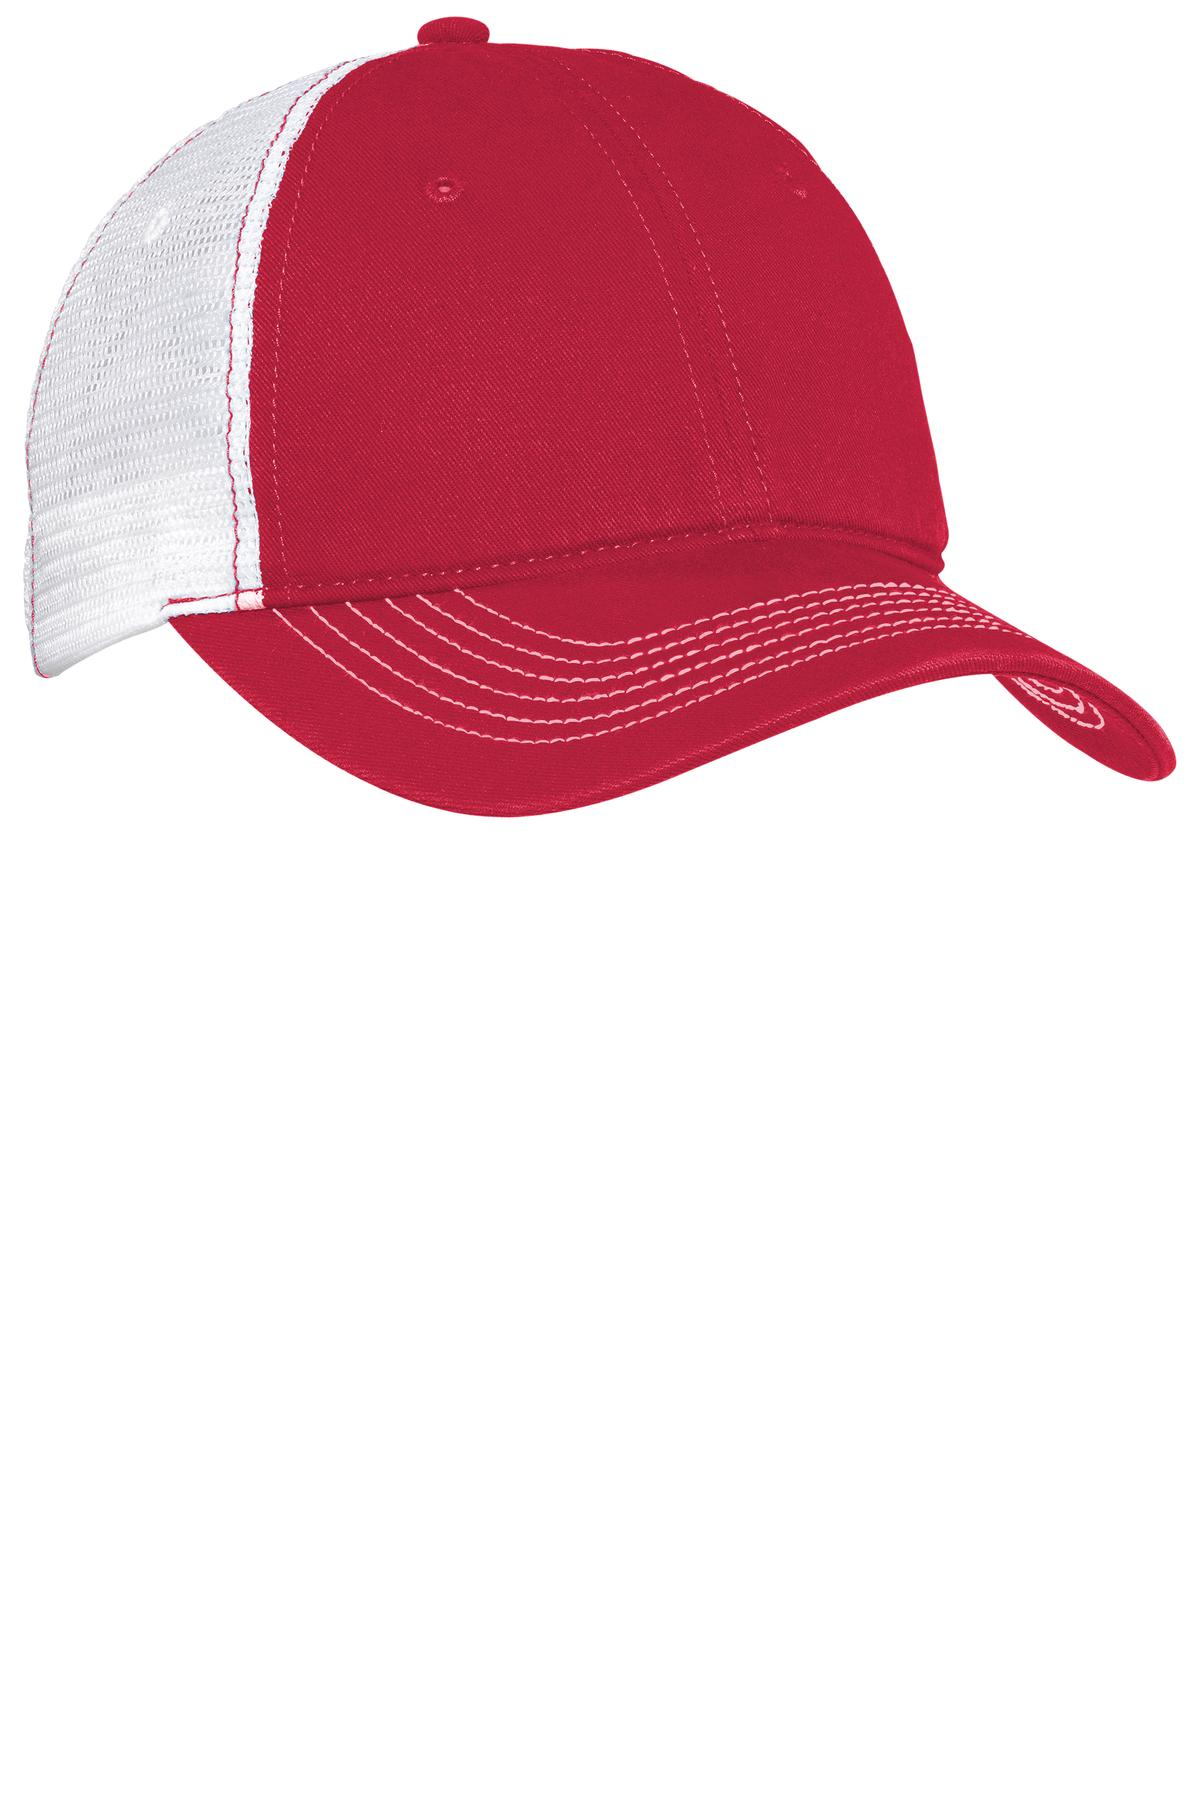 District ®  Mesh Back Cap. DT607 - Red/ White